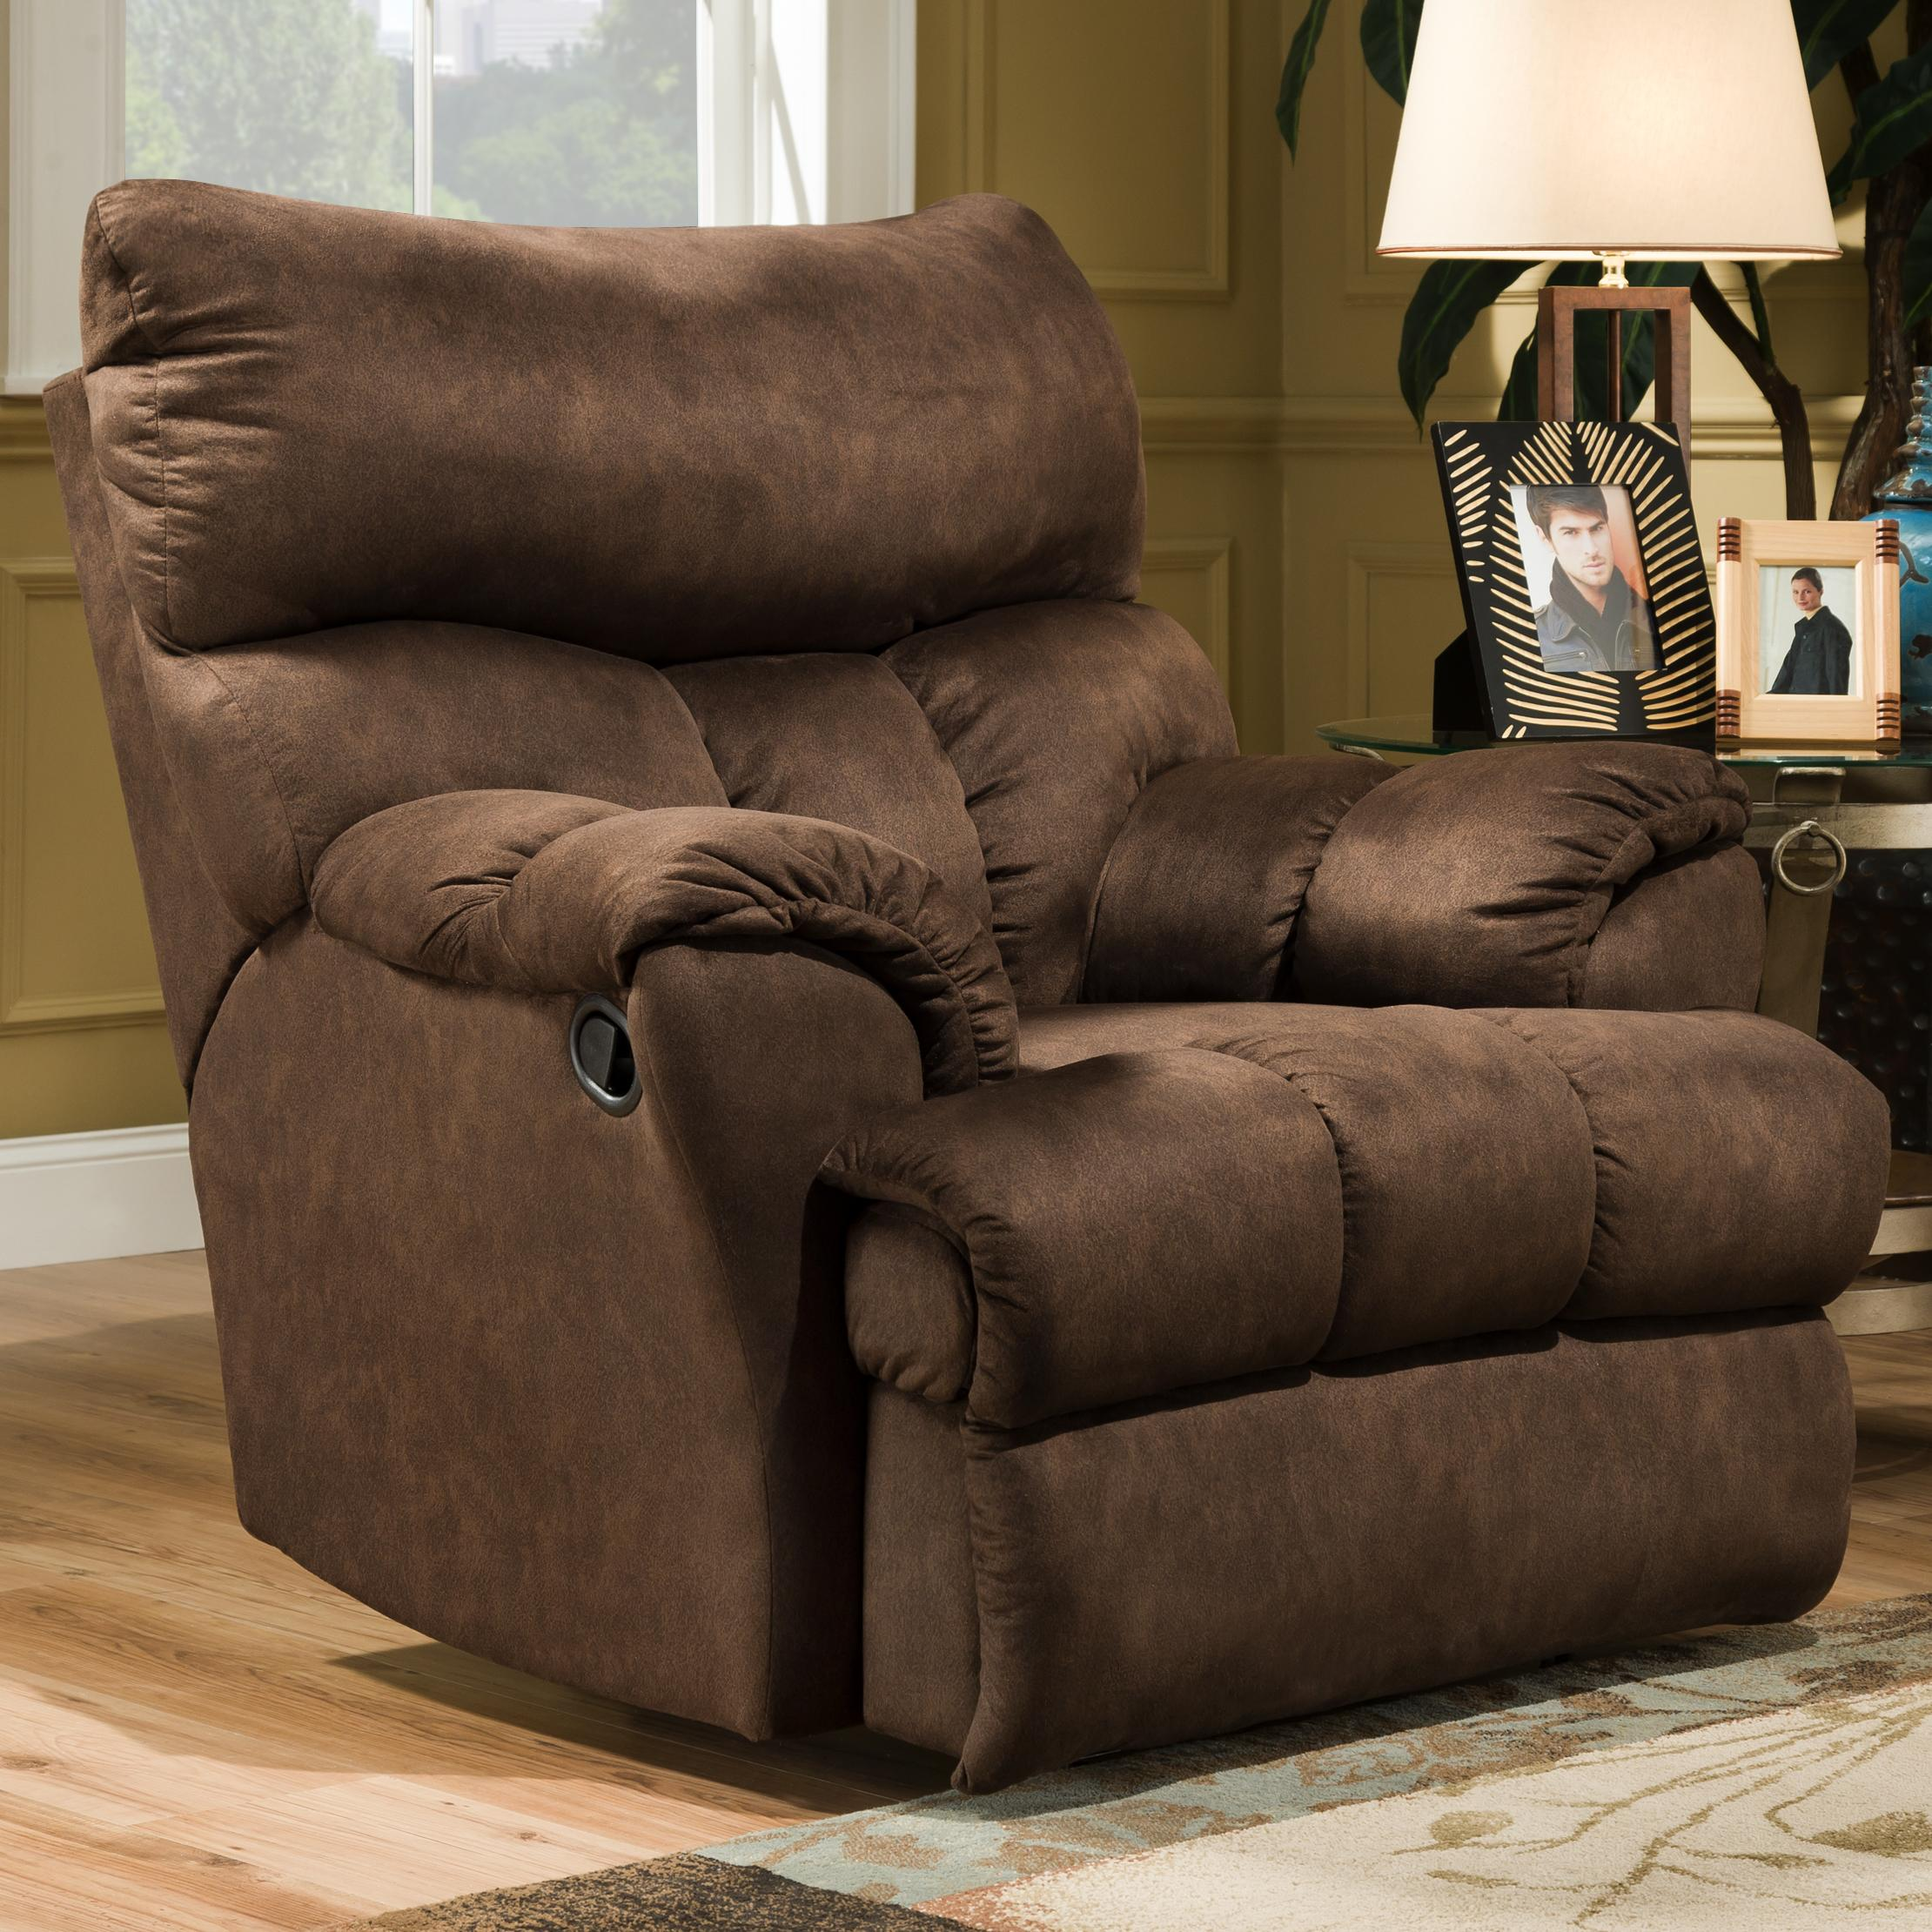 double wide recliner footboard size large feature and upholstered product homesfeed deep selections brown in chair oversized hidden